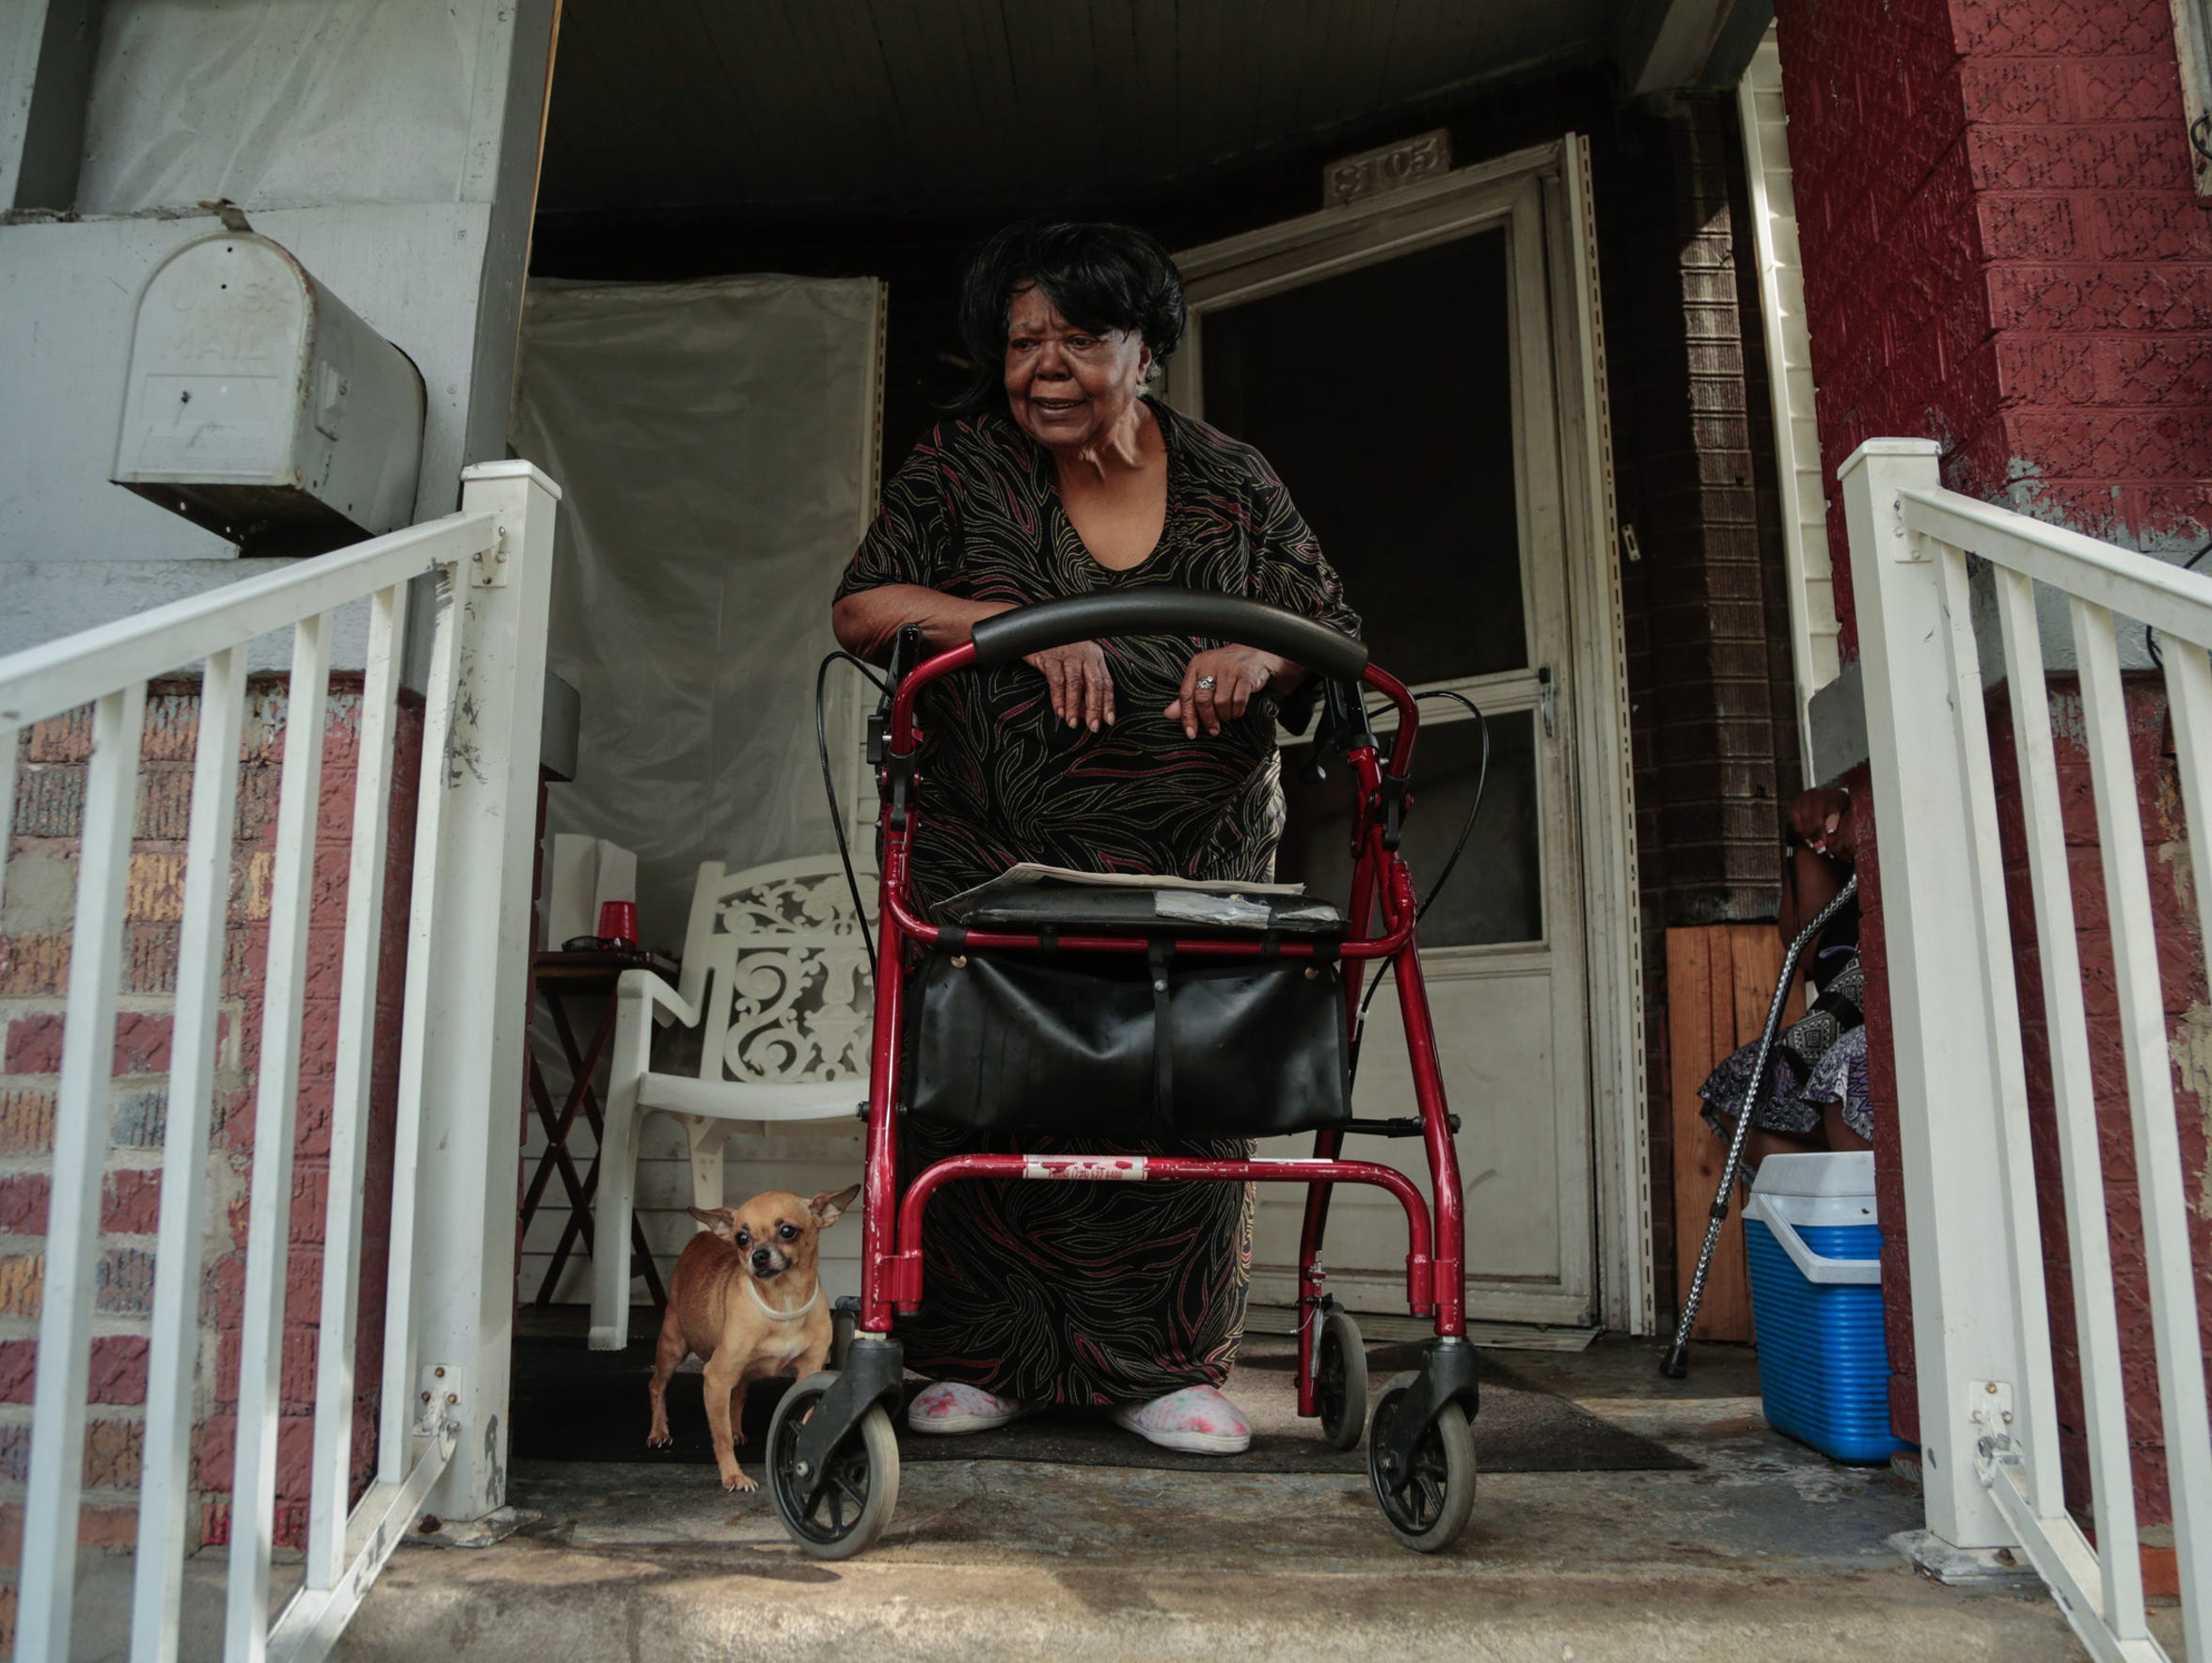 """The school that was up here, they done tore that down. The few houses on the street, they done tore them down. And now they're almost to my church -- 2nd Chance -- right around the corner,"" said 85-year-old Iola Patterson, as she stood on her front porch. With a new bridge to Canada slated to disrupt the neighborhood, the city is offering Delray homeowners like her a chance to move to a free house in another neighborhood, along with up to $60,000 to renovate it."